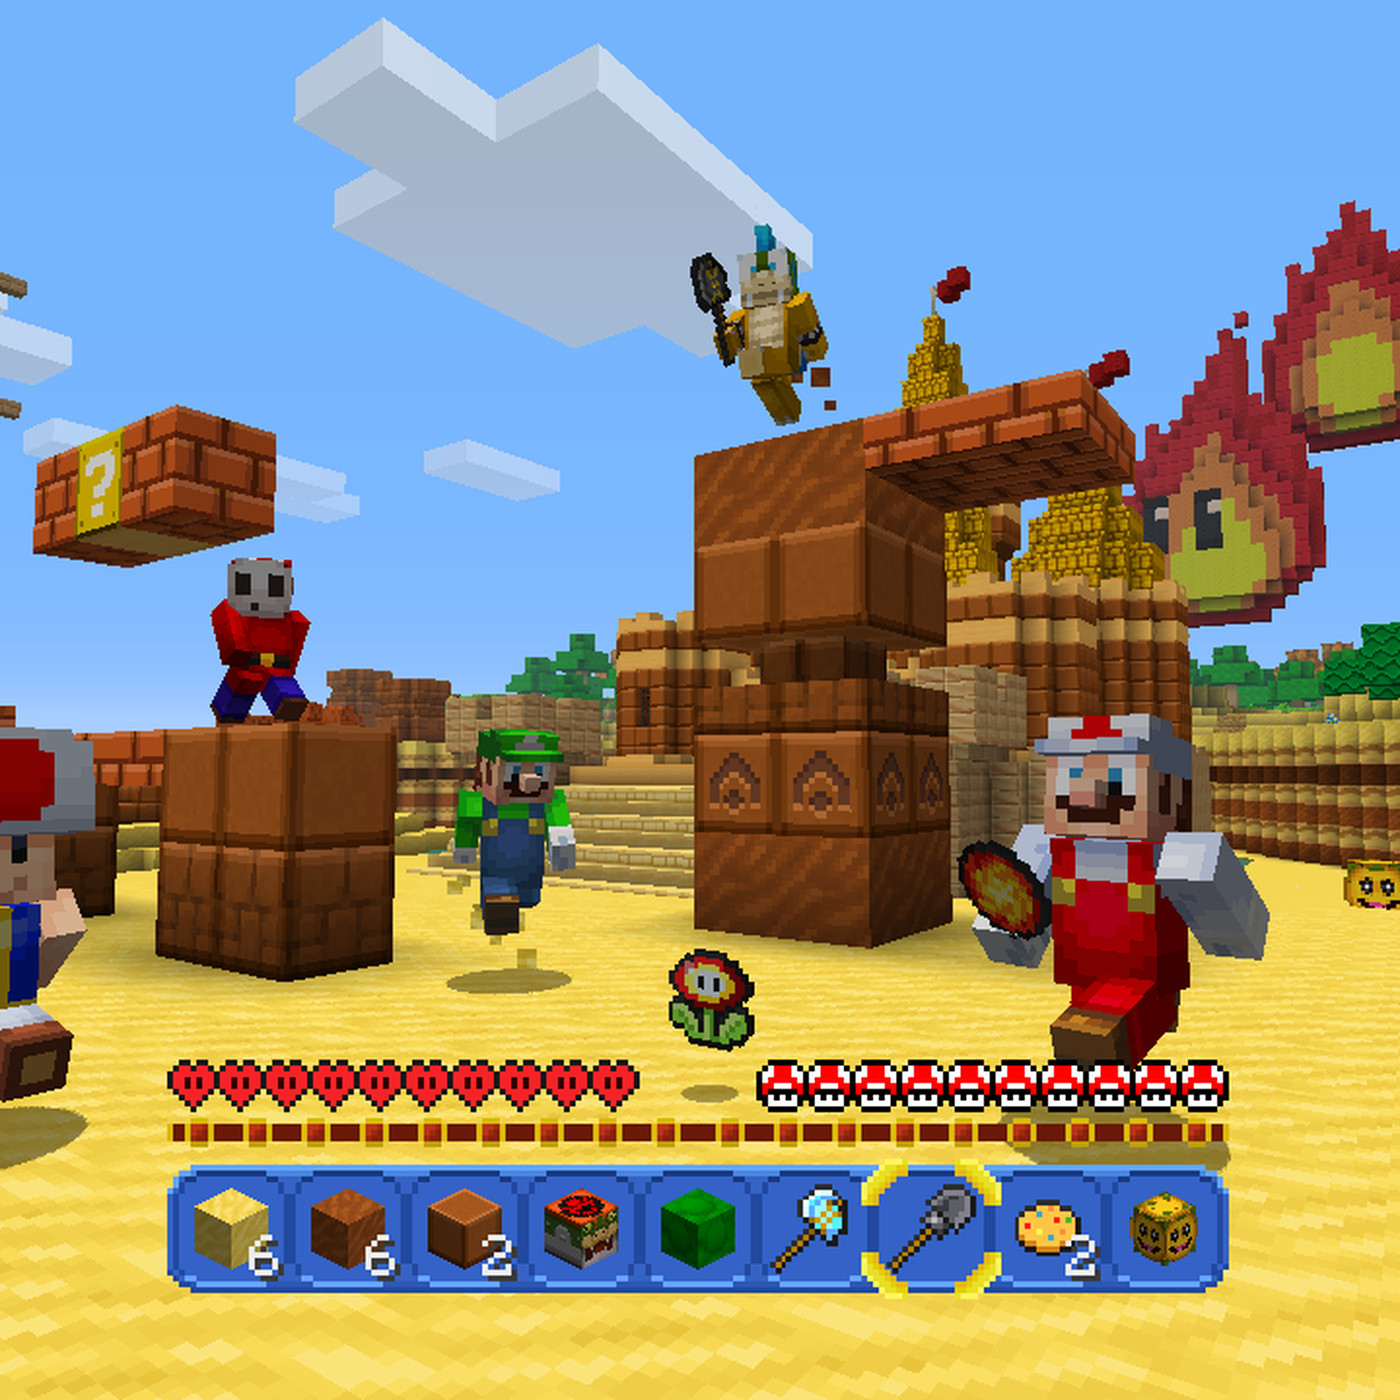 Nintendo S New Minecraft Mash Up Is A Love Letter To Super Mario